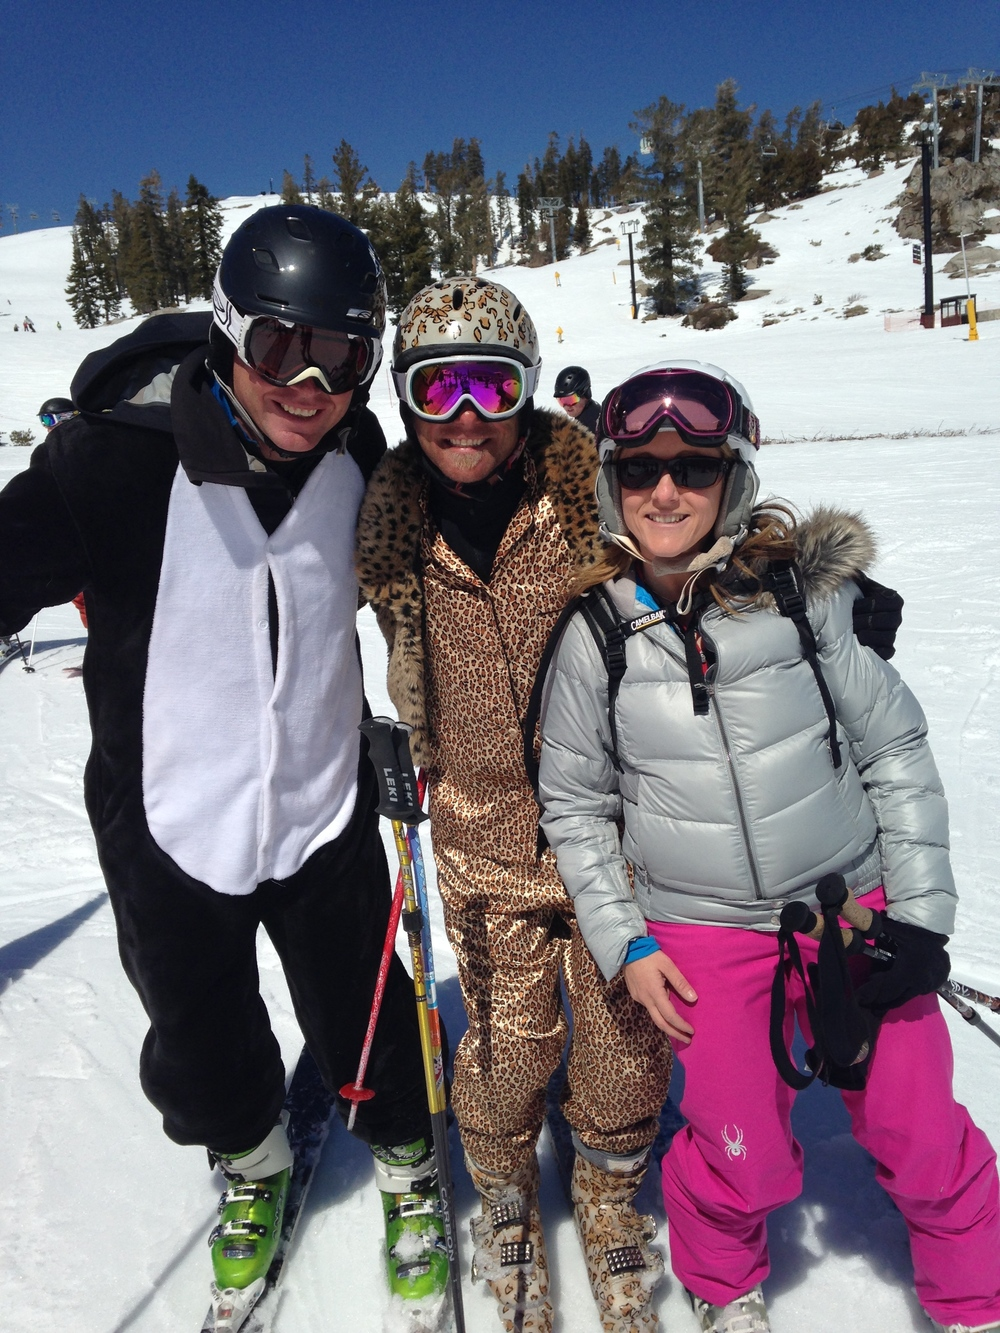 Soul Skiers Like to Dress Up and Ski